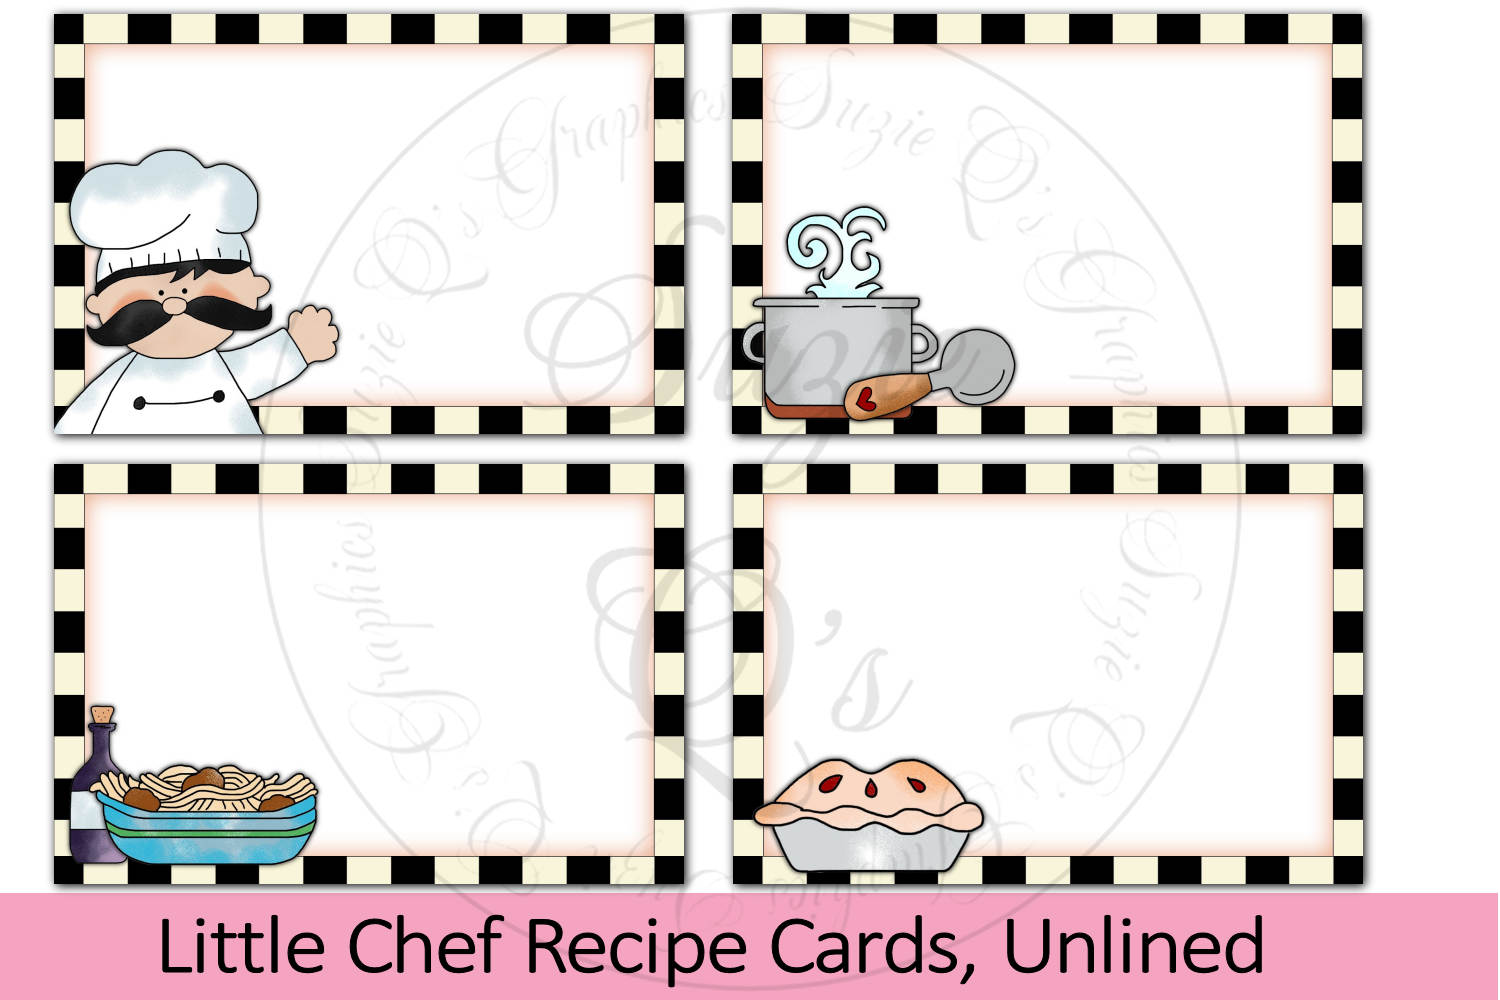 Little Chef Recipe Cards, unlined example image 1